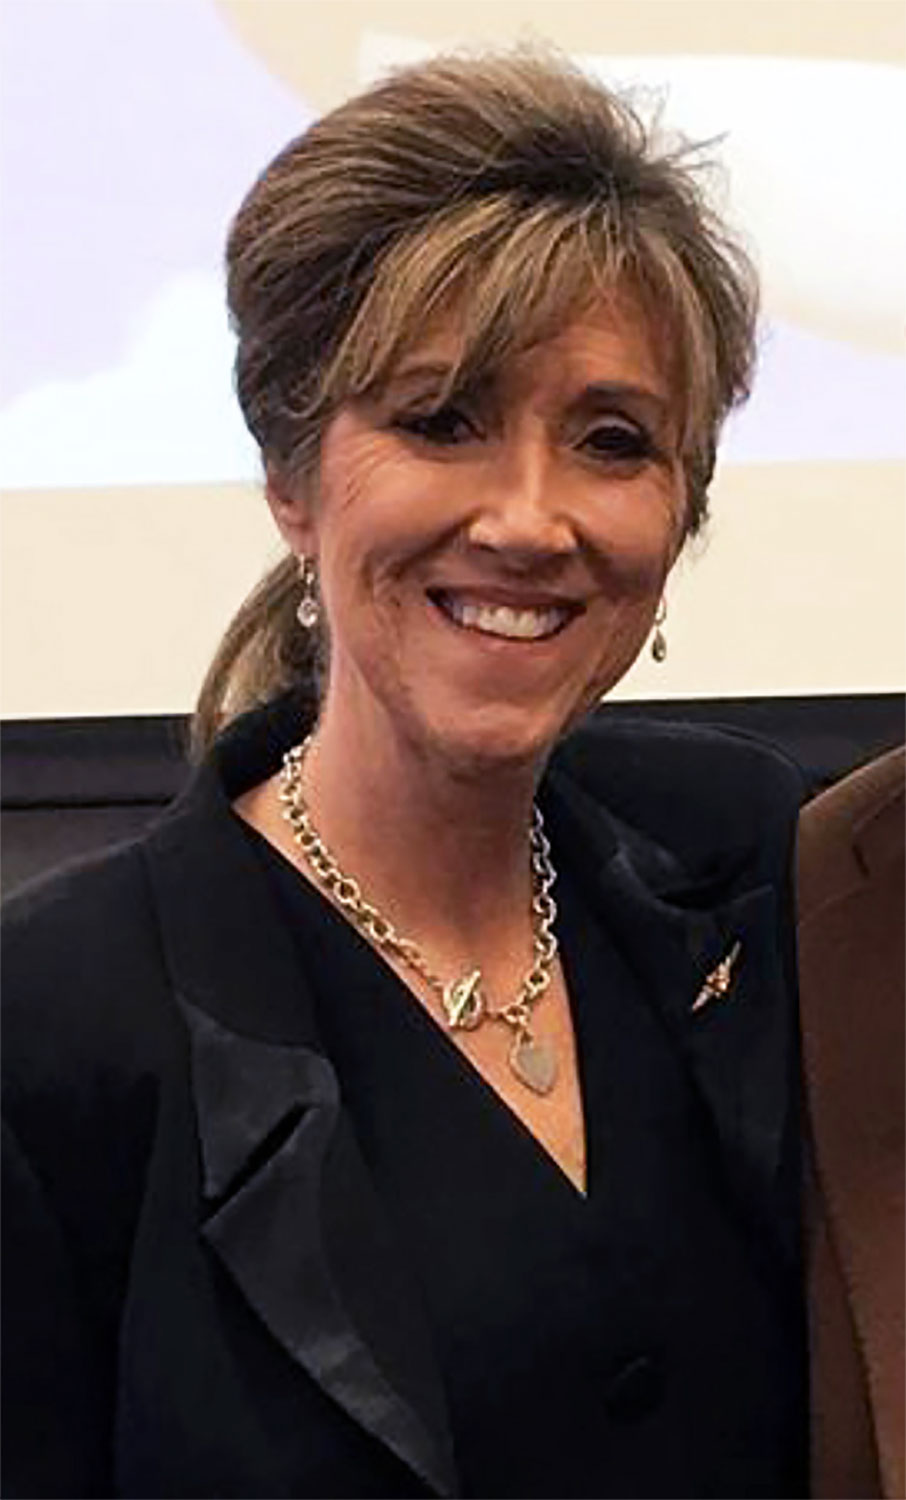 Heroic pilot Tammie Jo Shults who landed Southwest flight after engine explosion